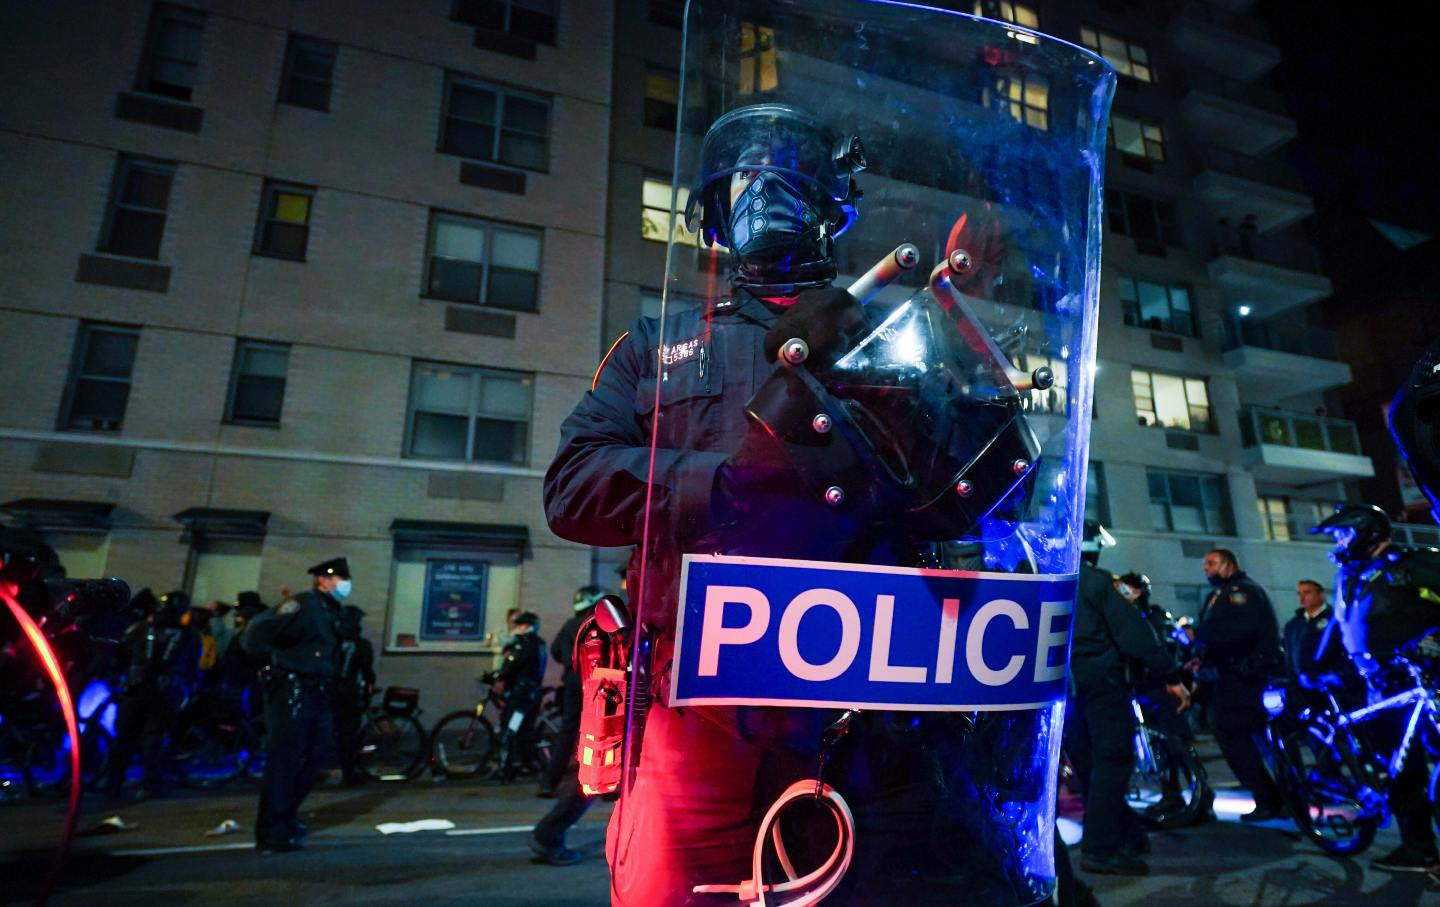 A police officer holds a riot shield that reads POLICE